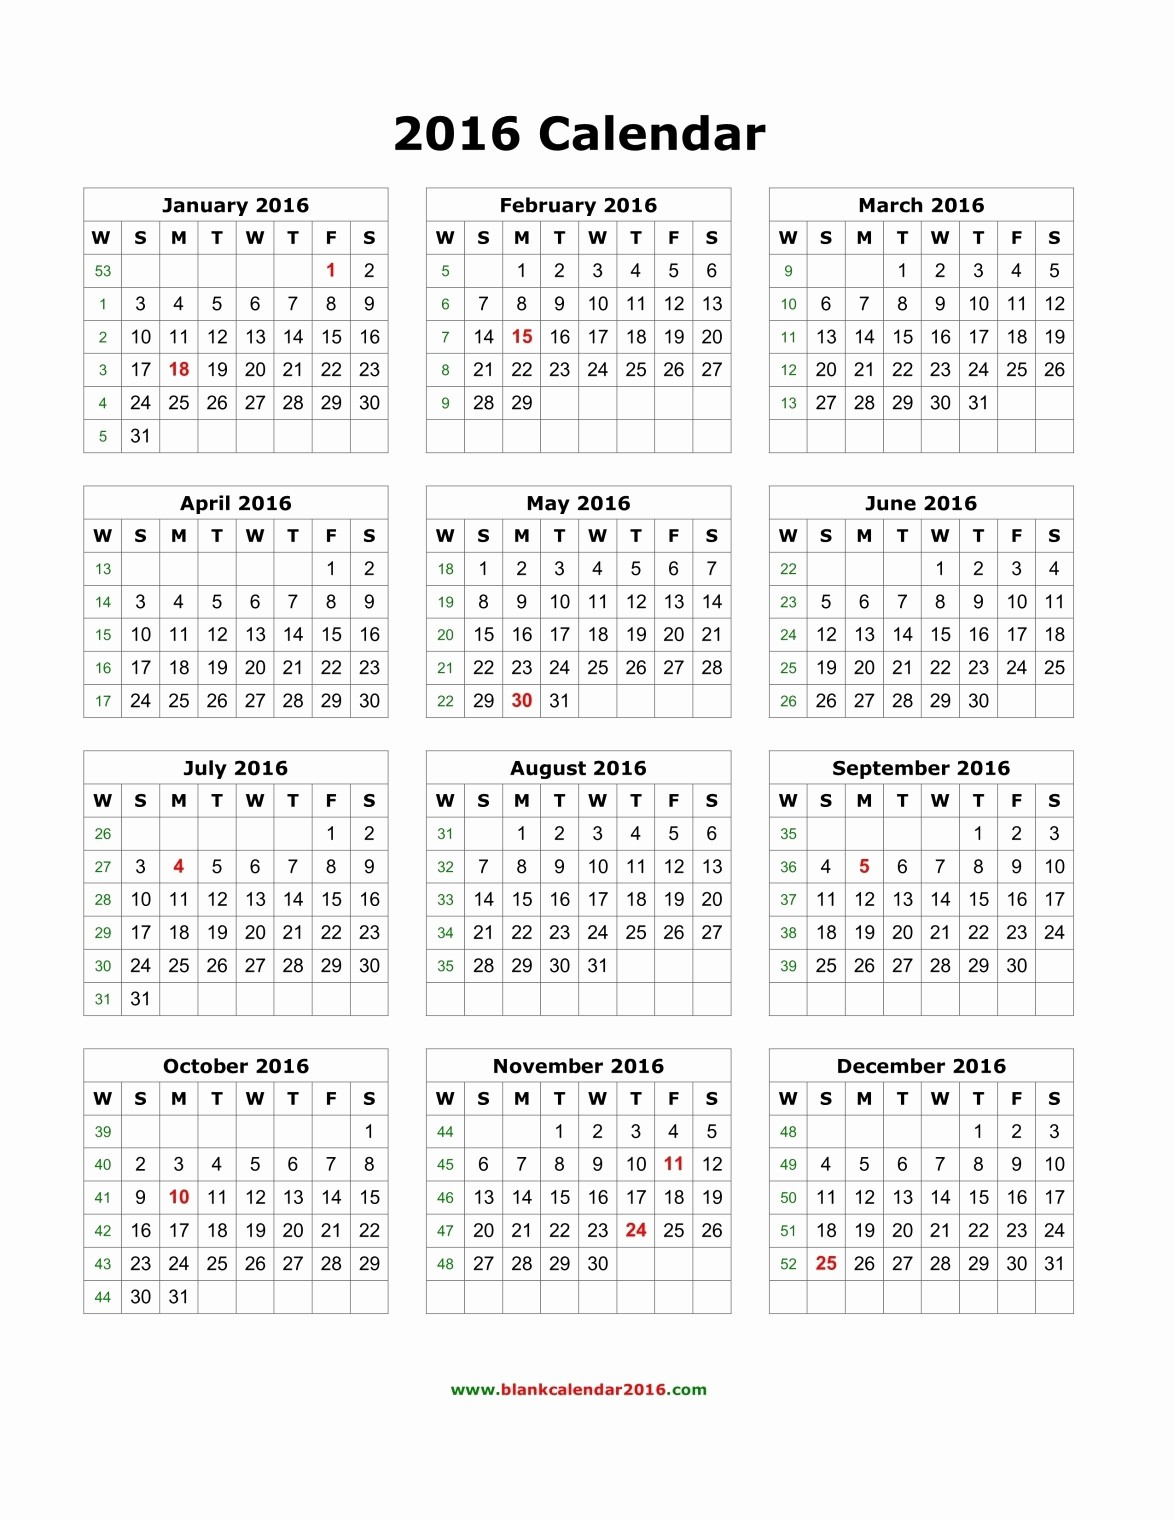 Free Downloadable 2016 Calendar Template New Yearly Calendar 2016 Template – Templates Free Printable